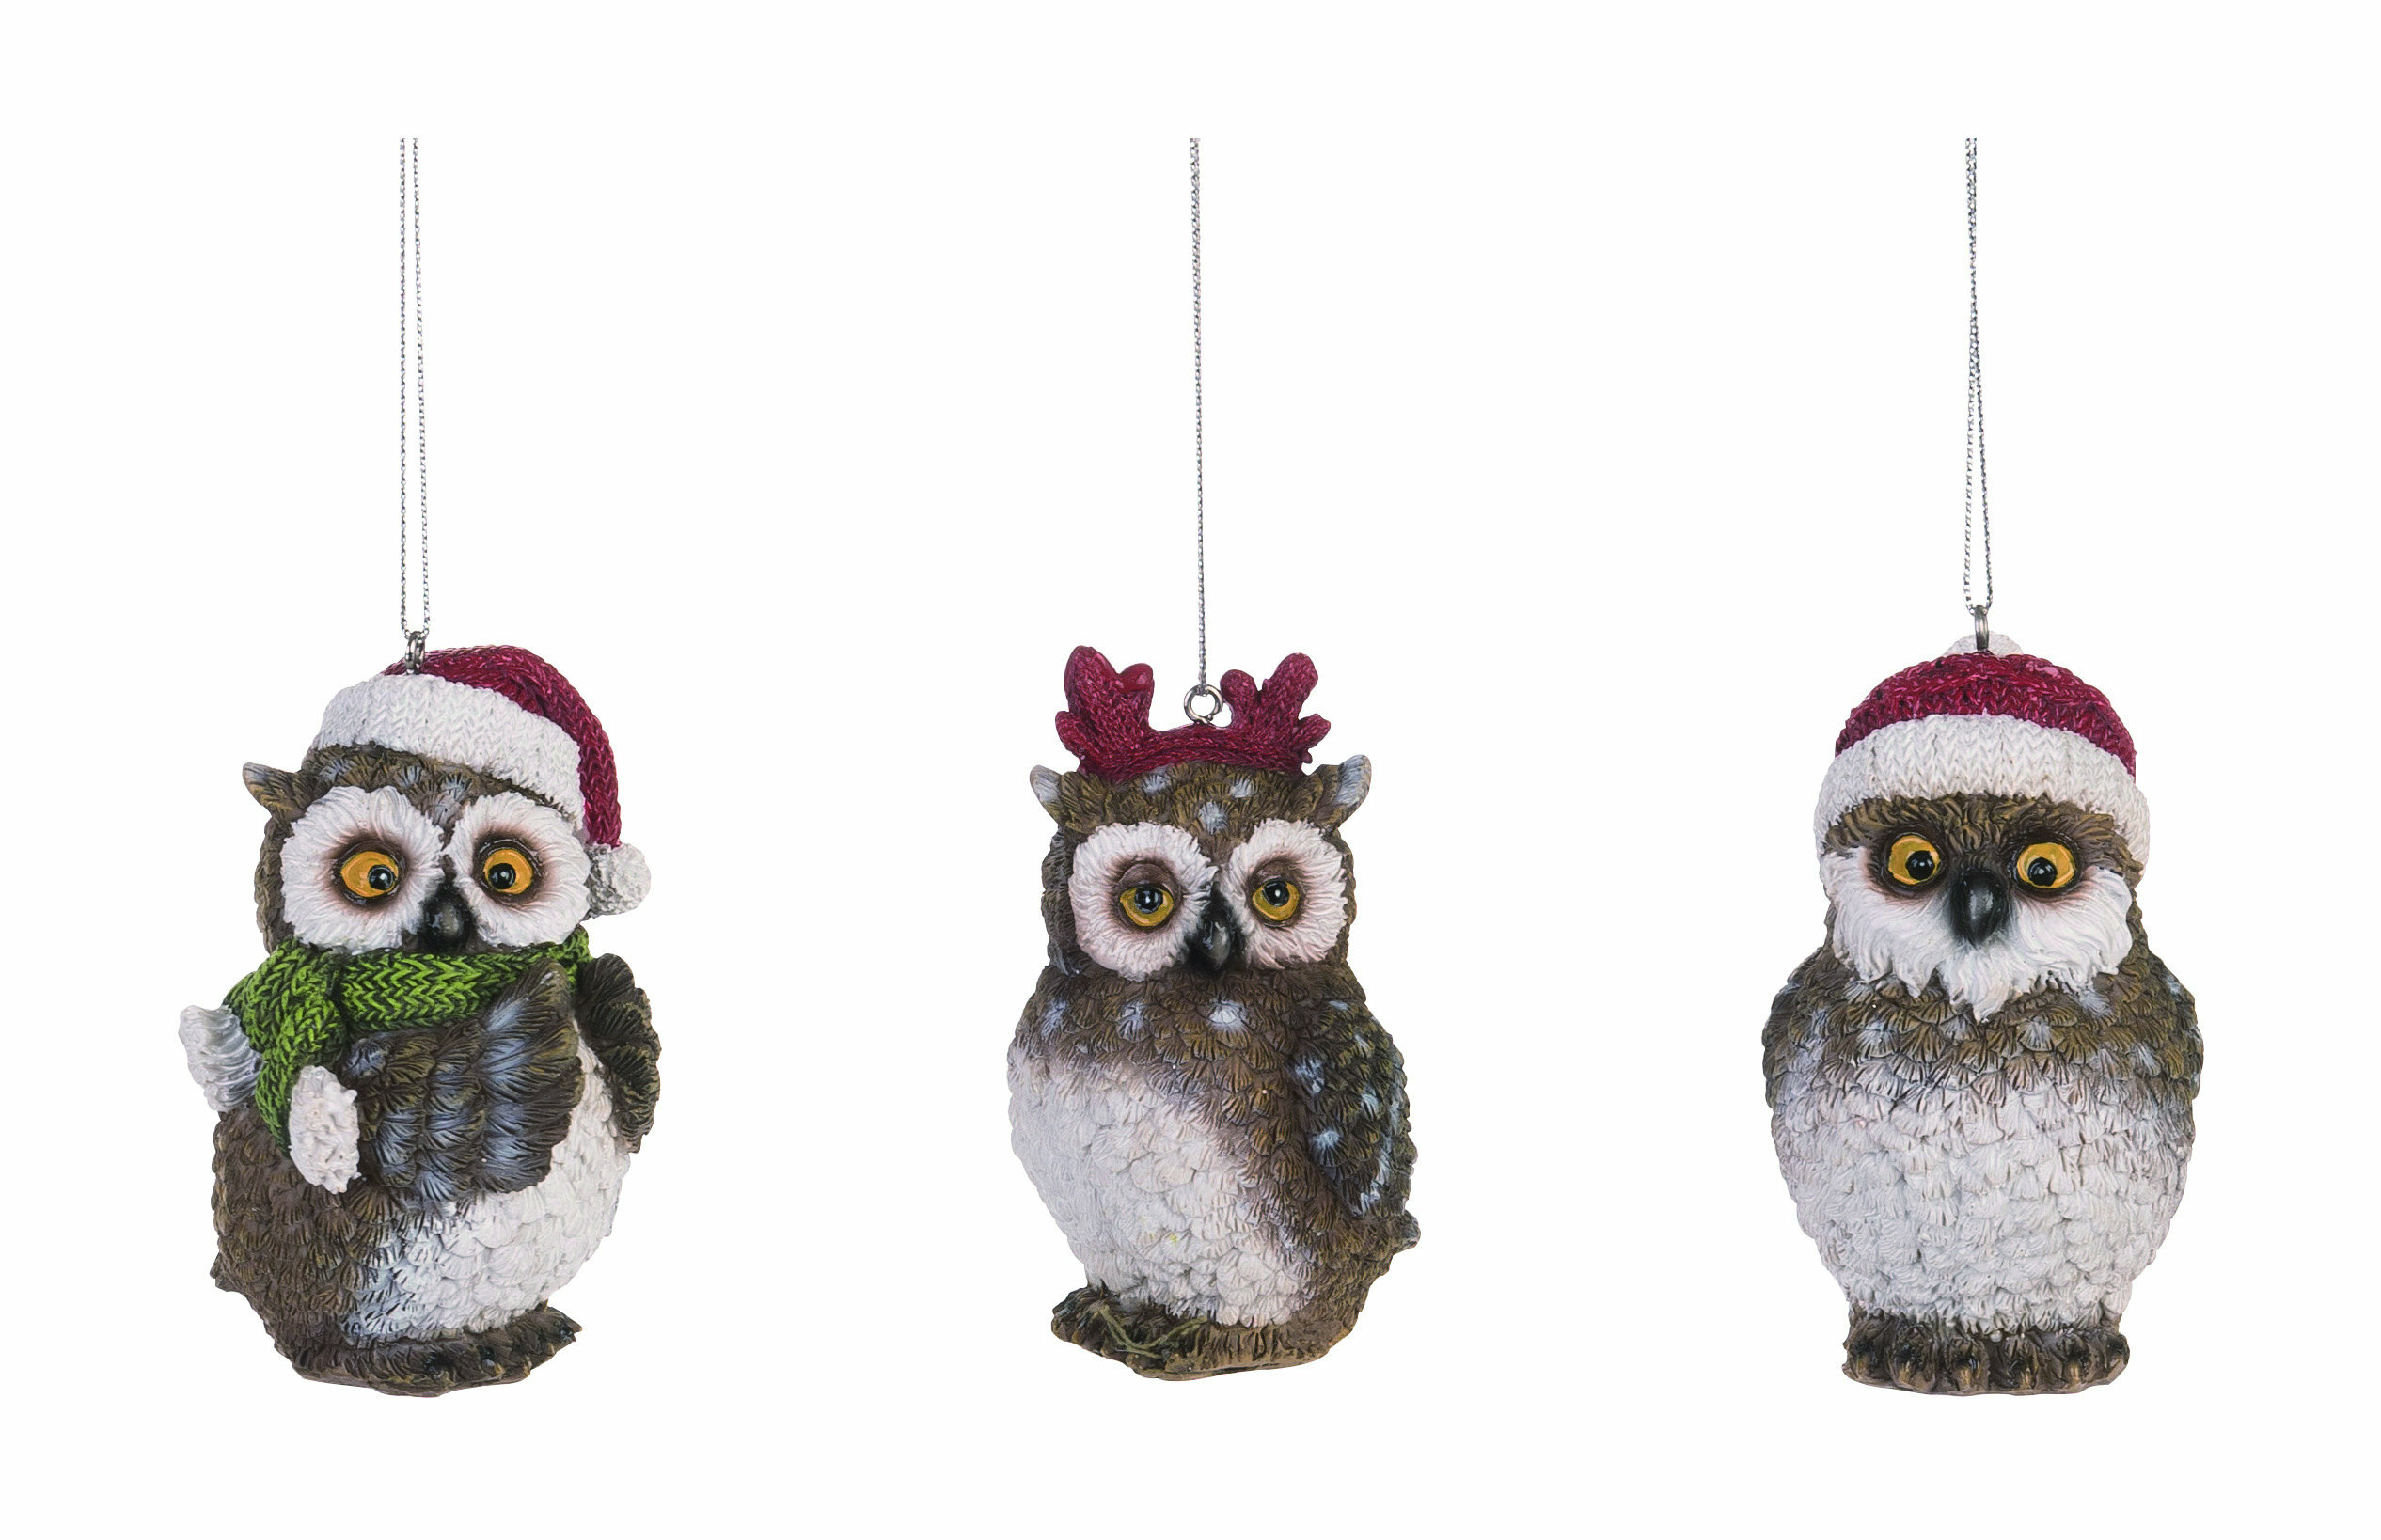 The Holiday Aisle 3 Piece Resin Owl Hanging Figurine Ornament Set Wayfair